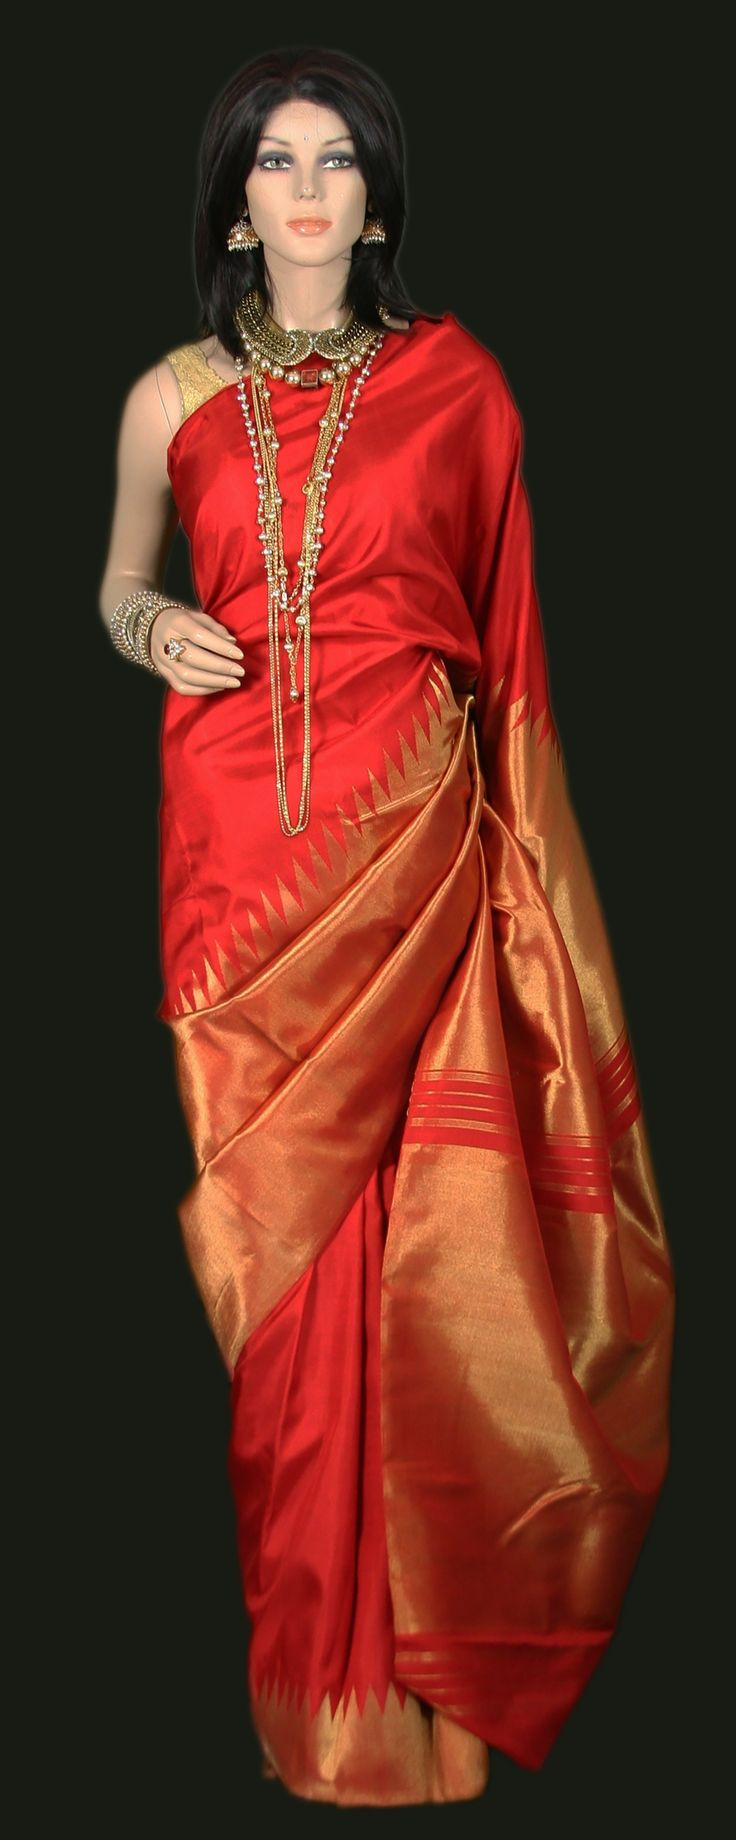 25+ best ideas about Red saree on Pinterest | Blouse ...